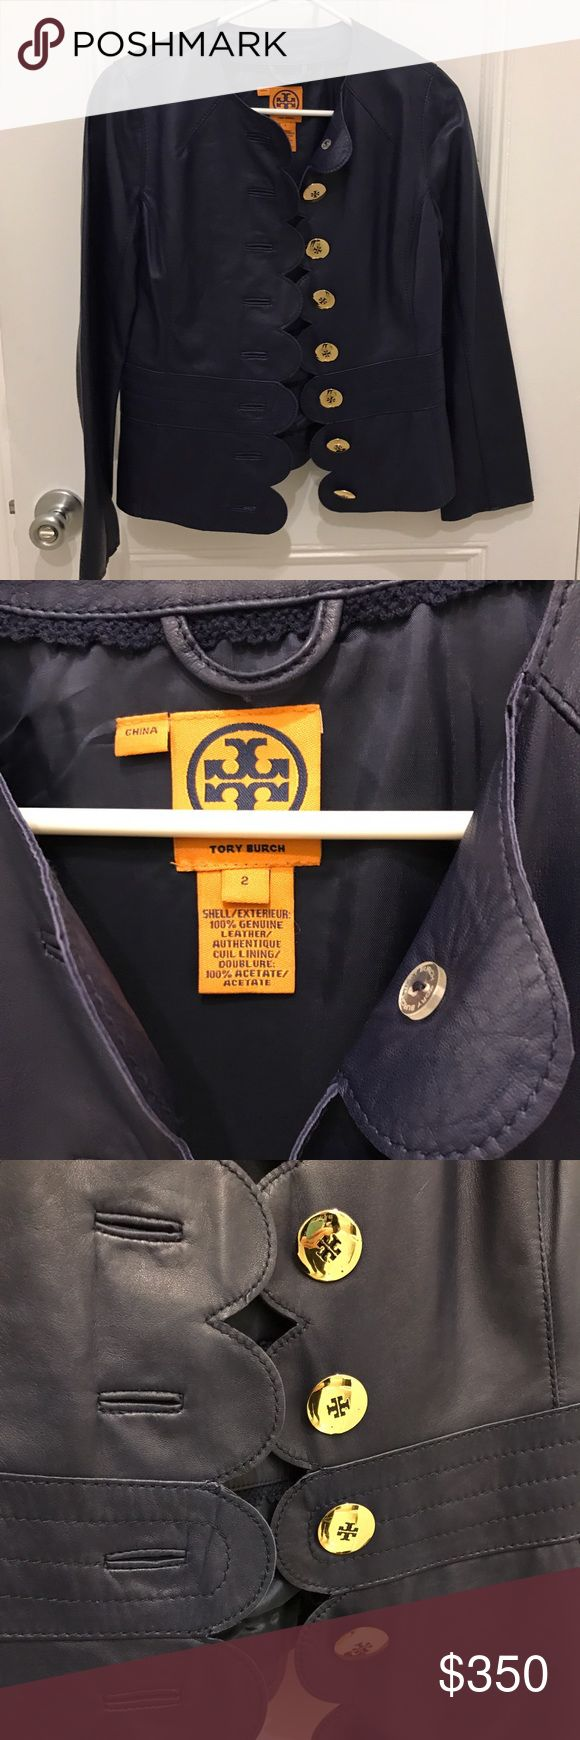 """Tory Burch Cordelia Navy Leather Jacket Size 2 Tory Burch Cordelia Navy Leather Jacket Size 2. Scalloped edge, large brass logo buttons, lamb skin leather (buttery soft), cupro lining. Shoulder to wrist: 23.5"""". Shoulder to hem: 21.5"""". Worn only once and in like-new condition! Tory Burch Jackets & Coats Blazers"""